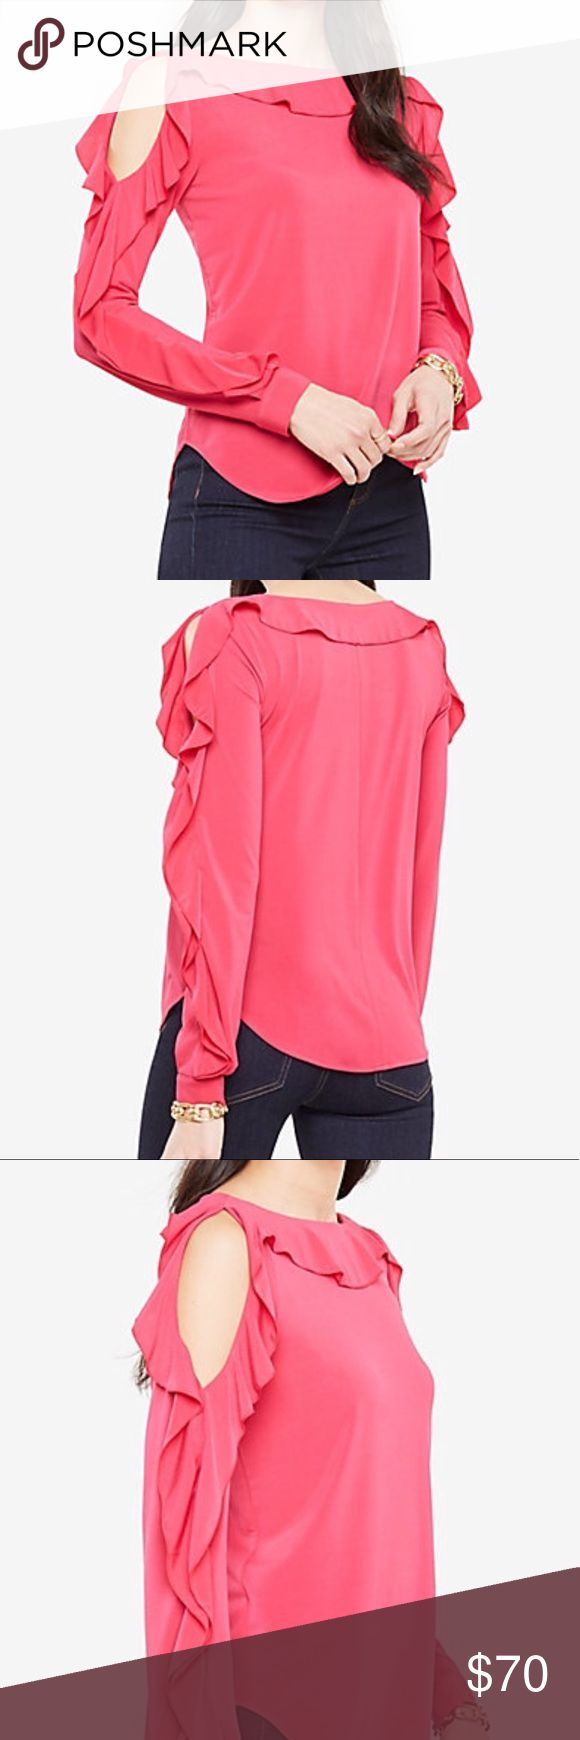 Ann Taylor Ruffle Sleeves Blouse Romantic hot pink blouse w/ ruffle detail in the sleeves and neckline Ann Taylor Tops Blouses